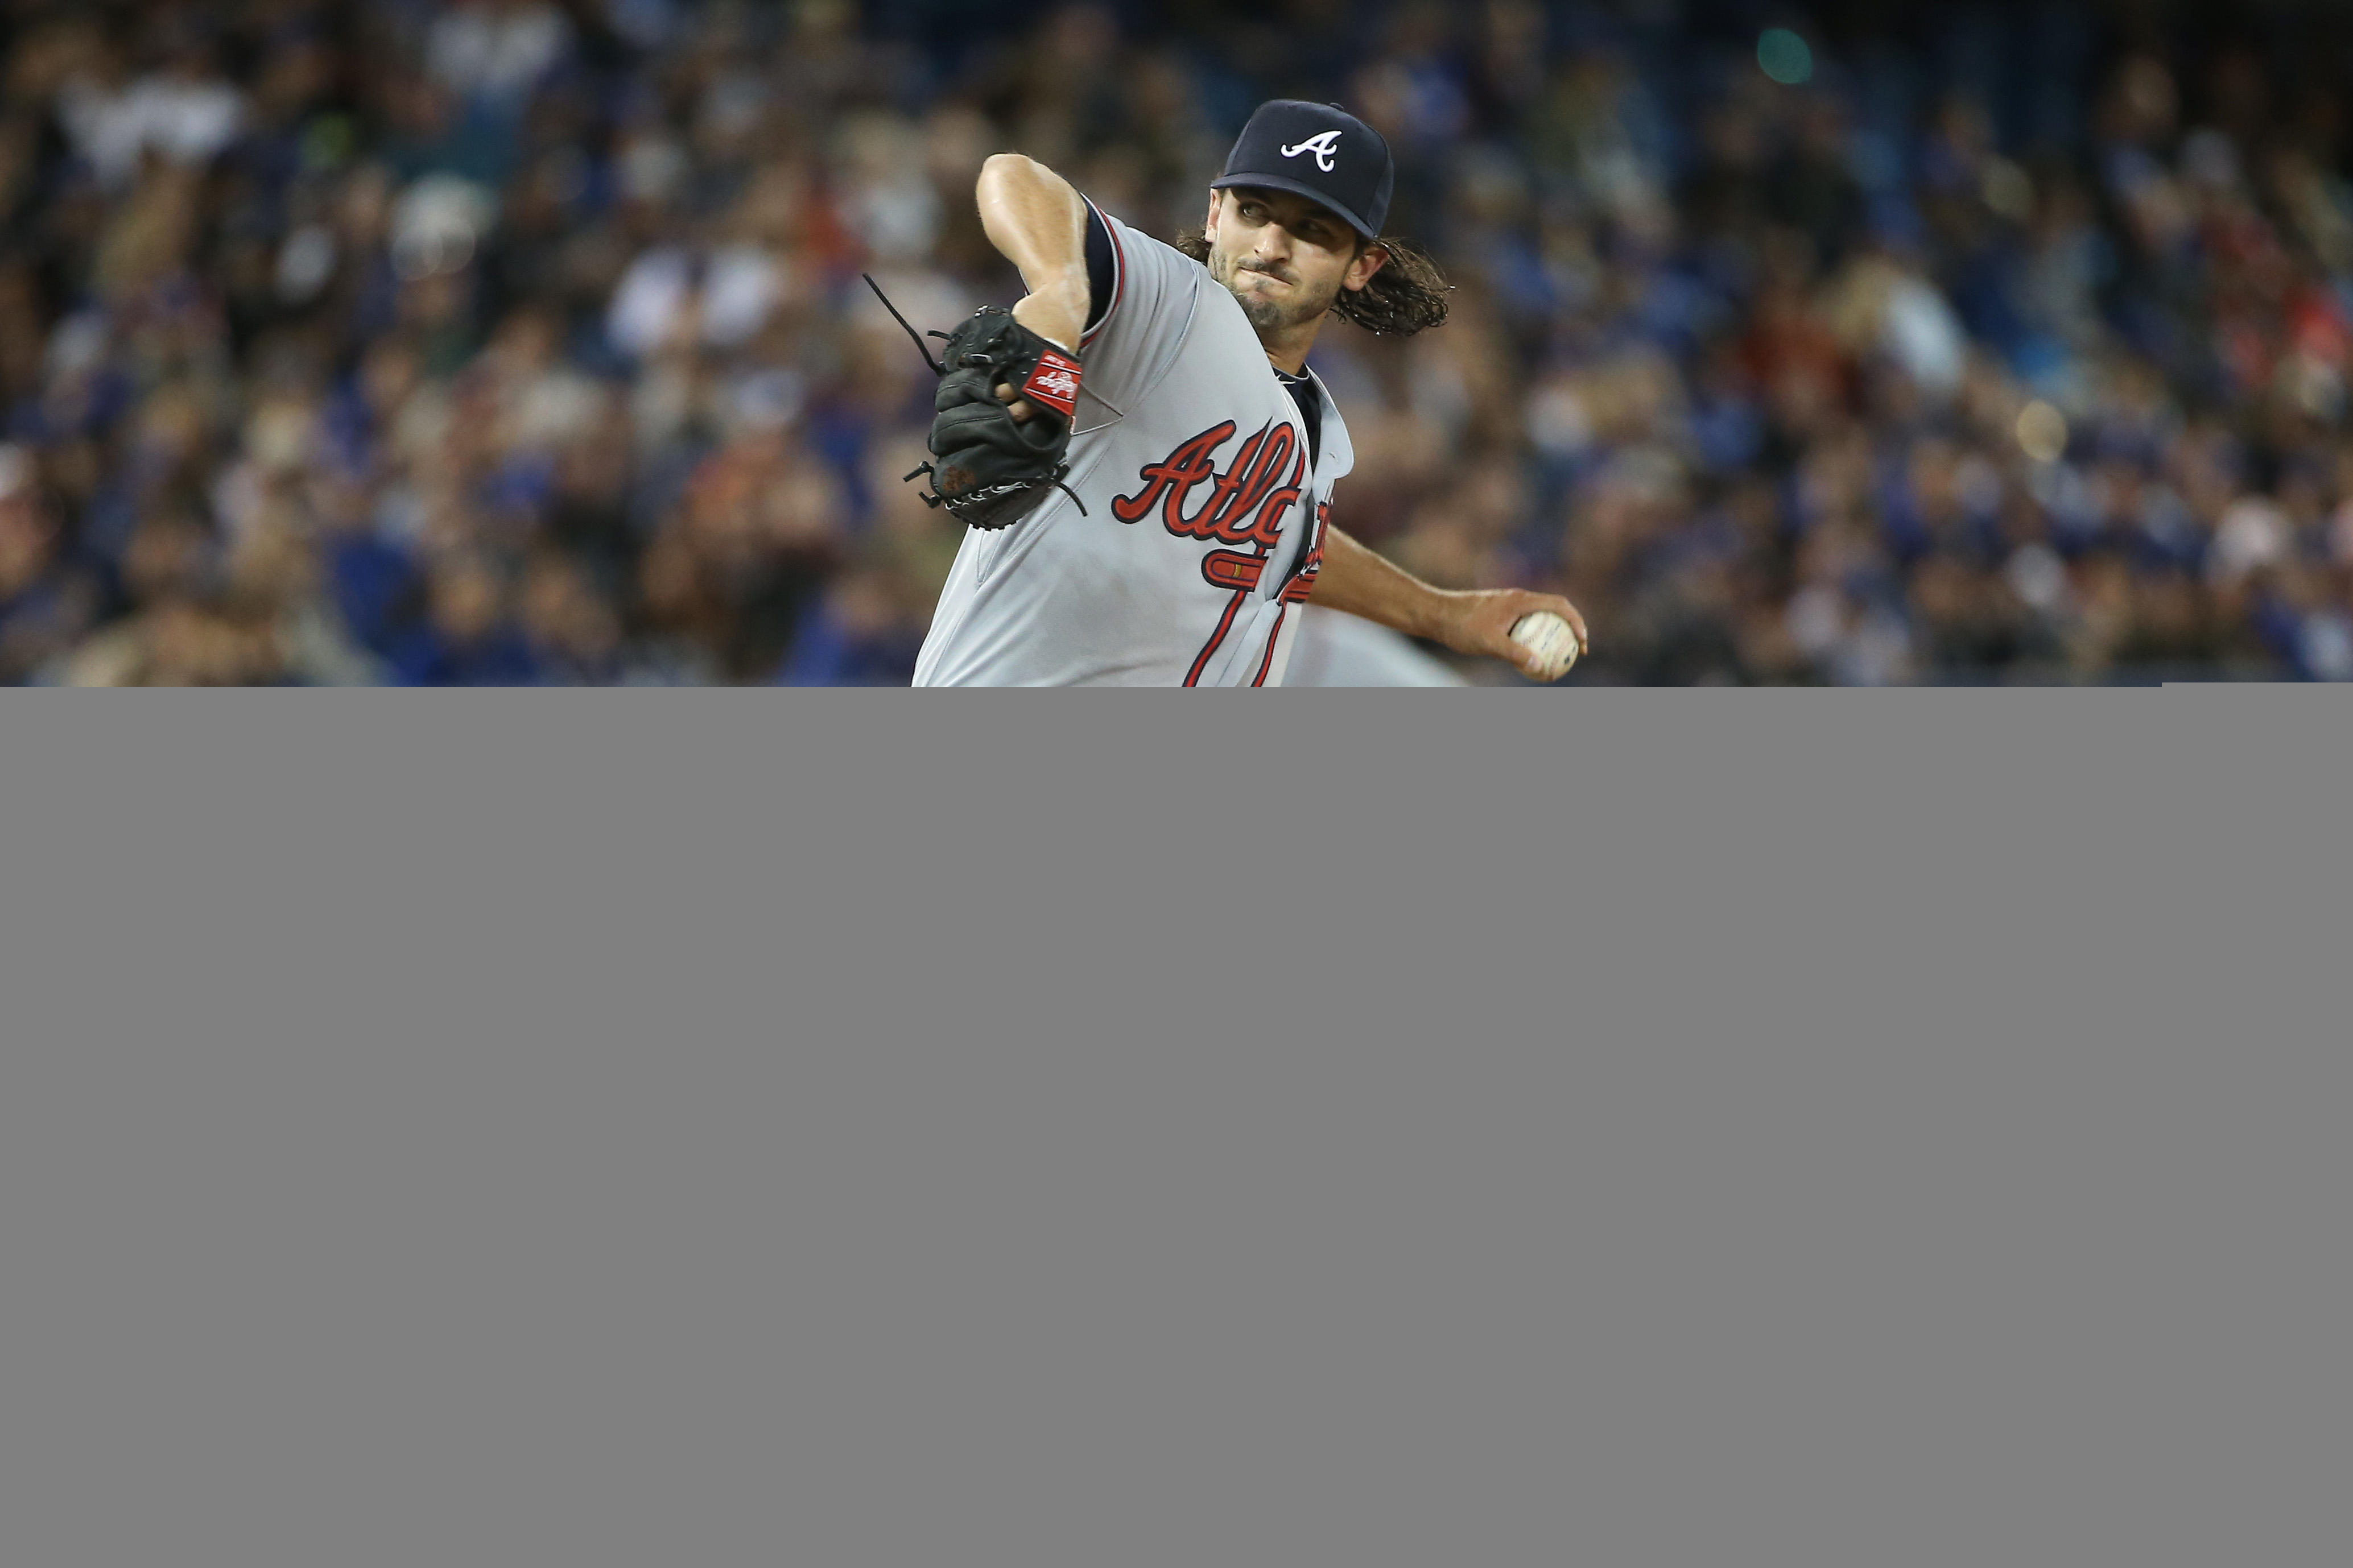 Braves pitcher McKirahan banned for 80 games